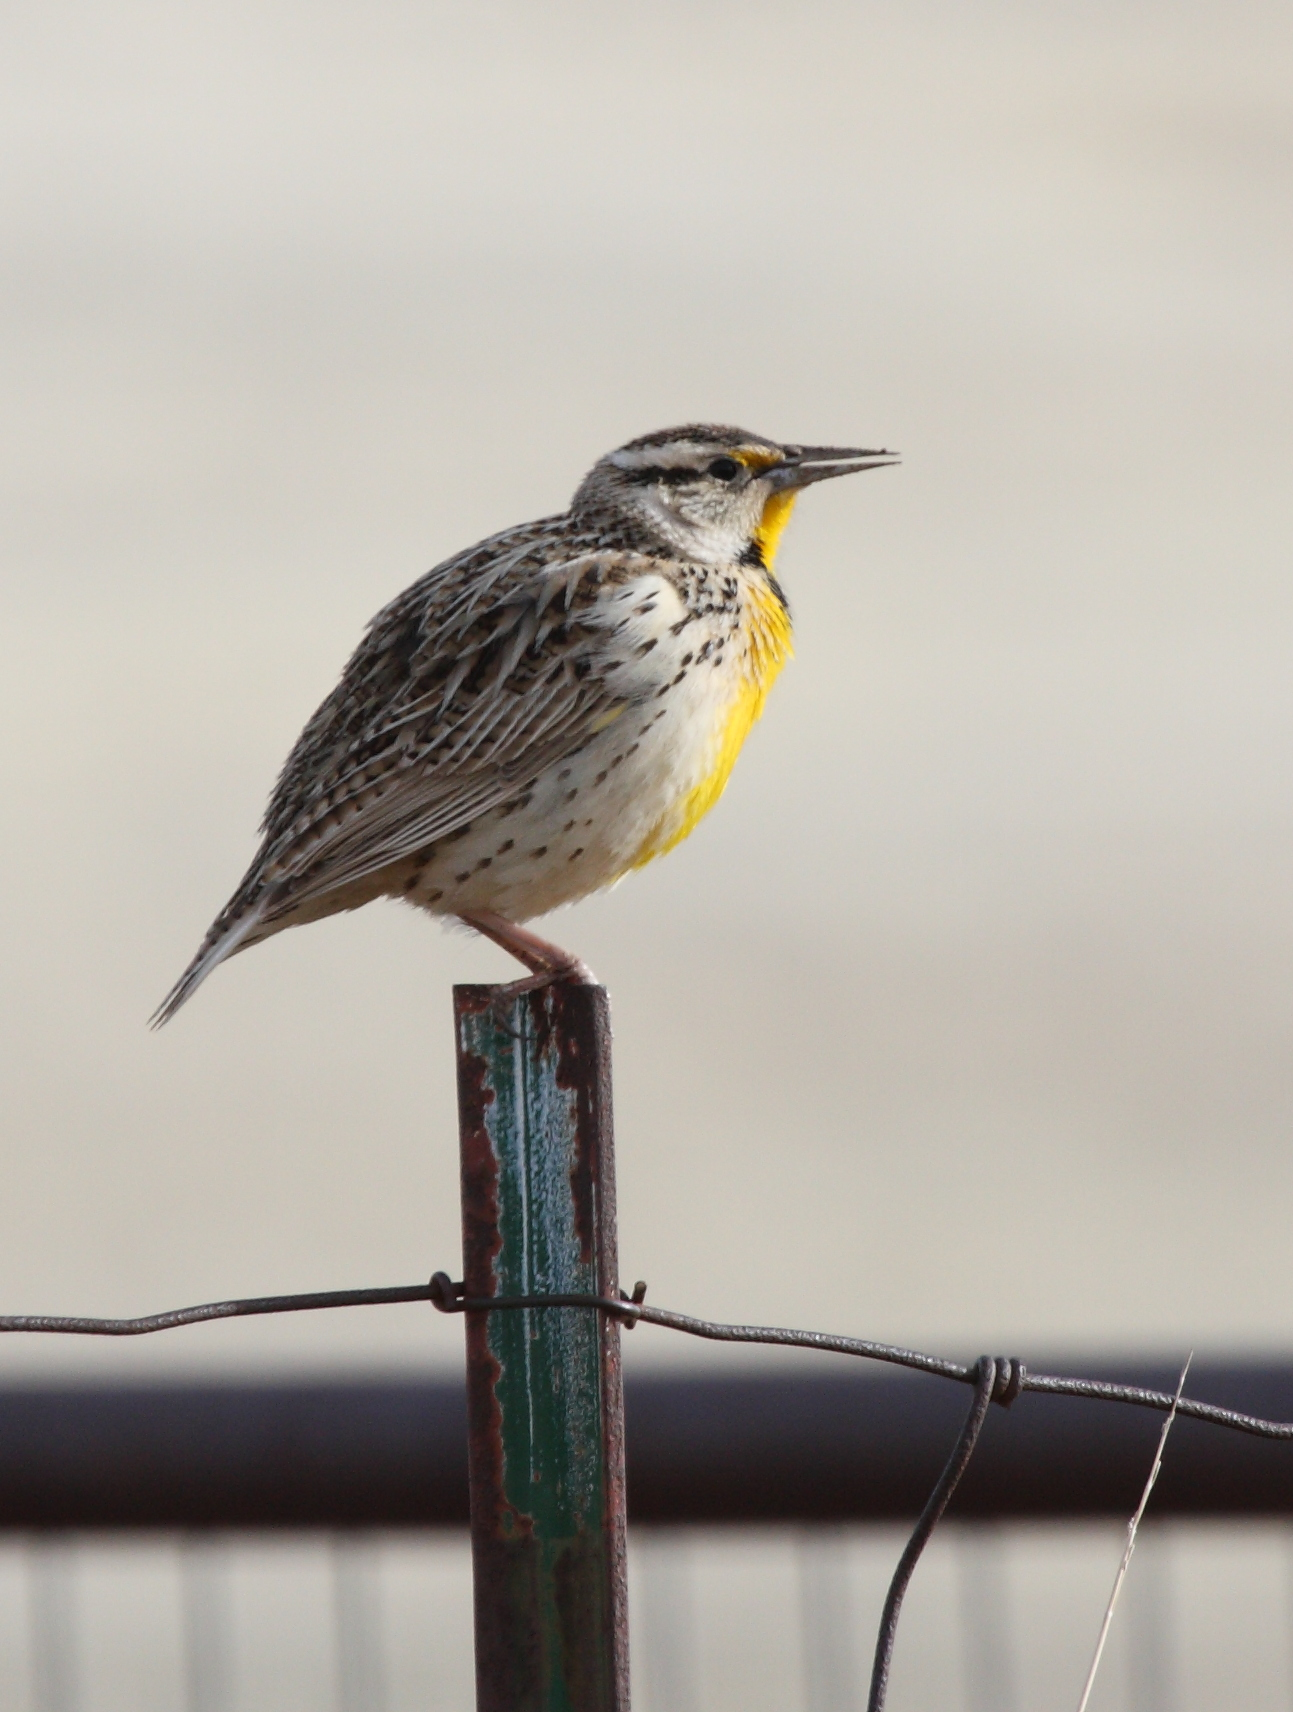 File:Eastern Meadowlark.jpg